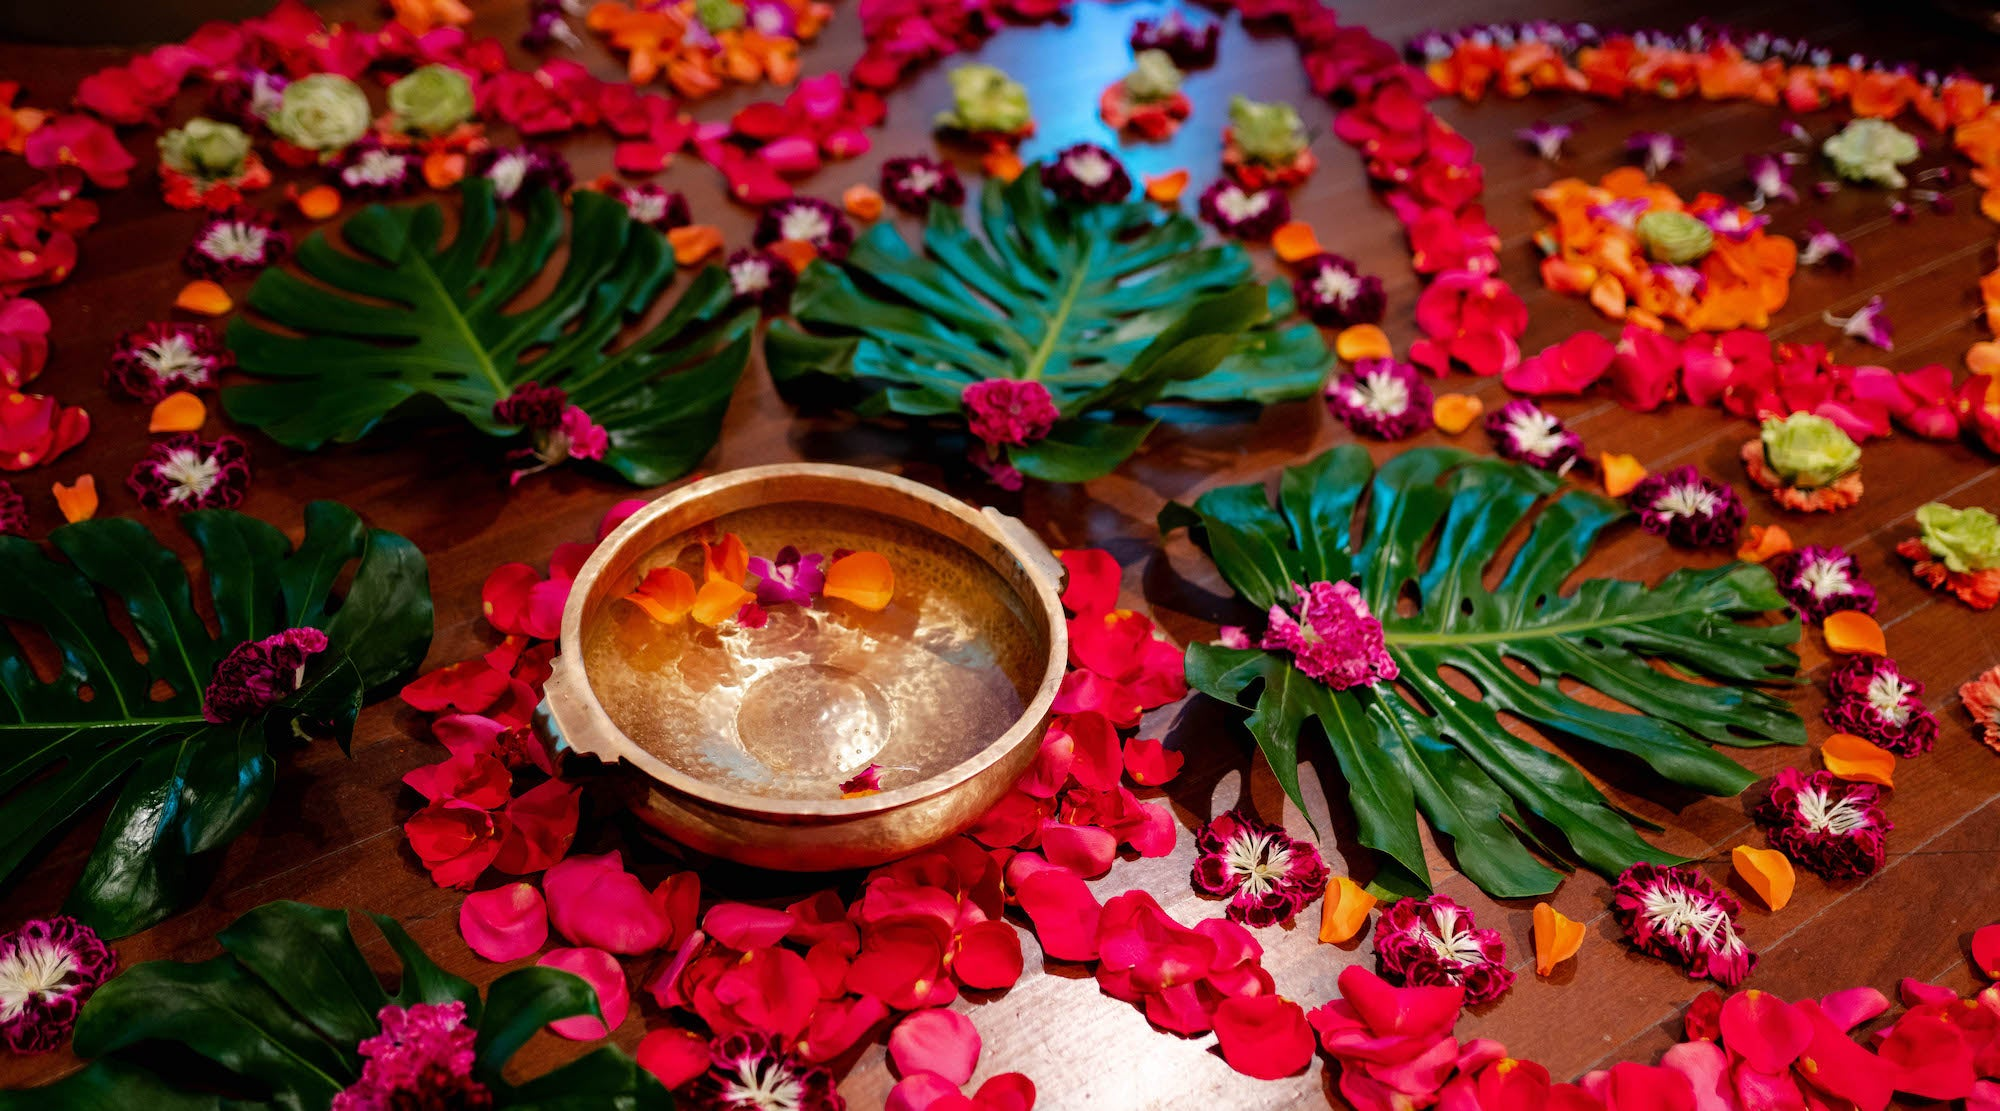 FLOWER ALTAR AT THE RUBIN MUSEUM